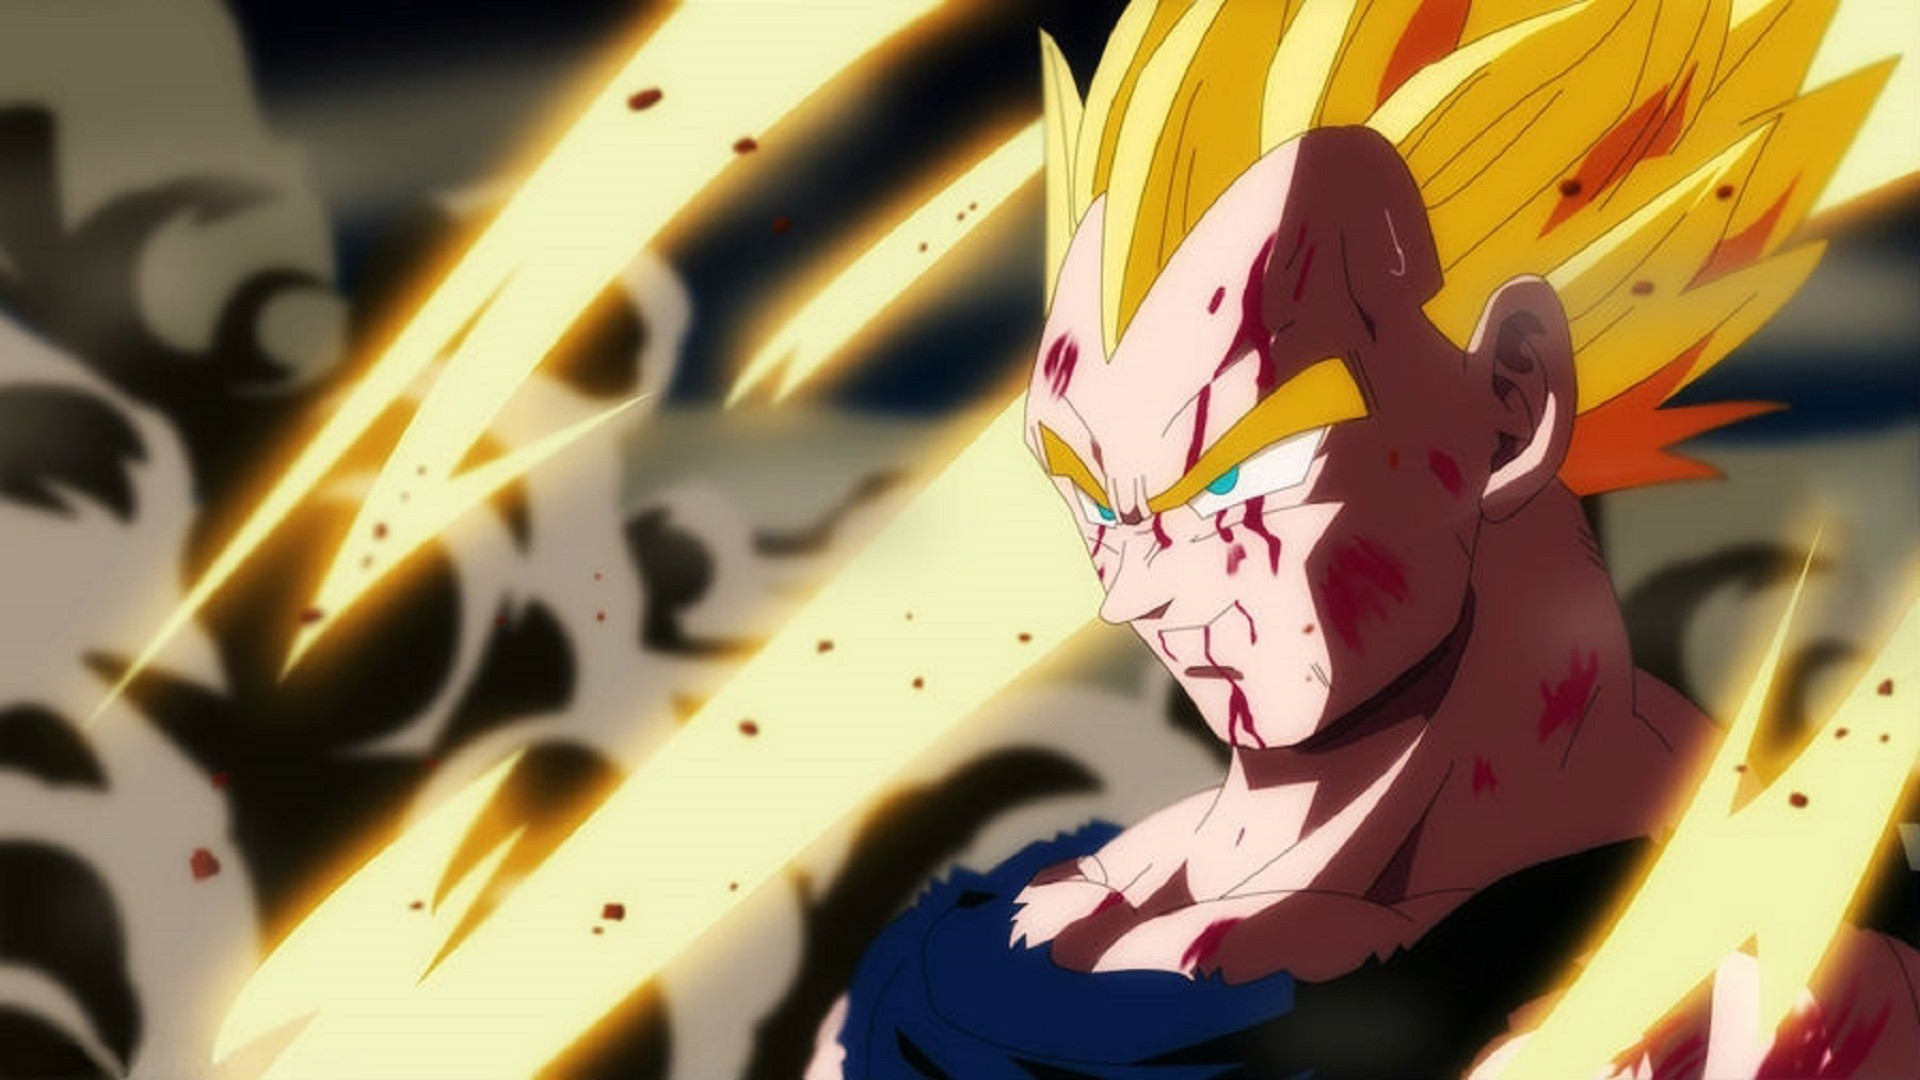 Majin vegeta wallpaper hd 76 images - Vegeta wallpapers for mobile ...